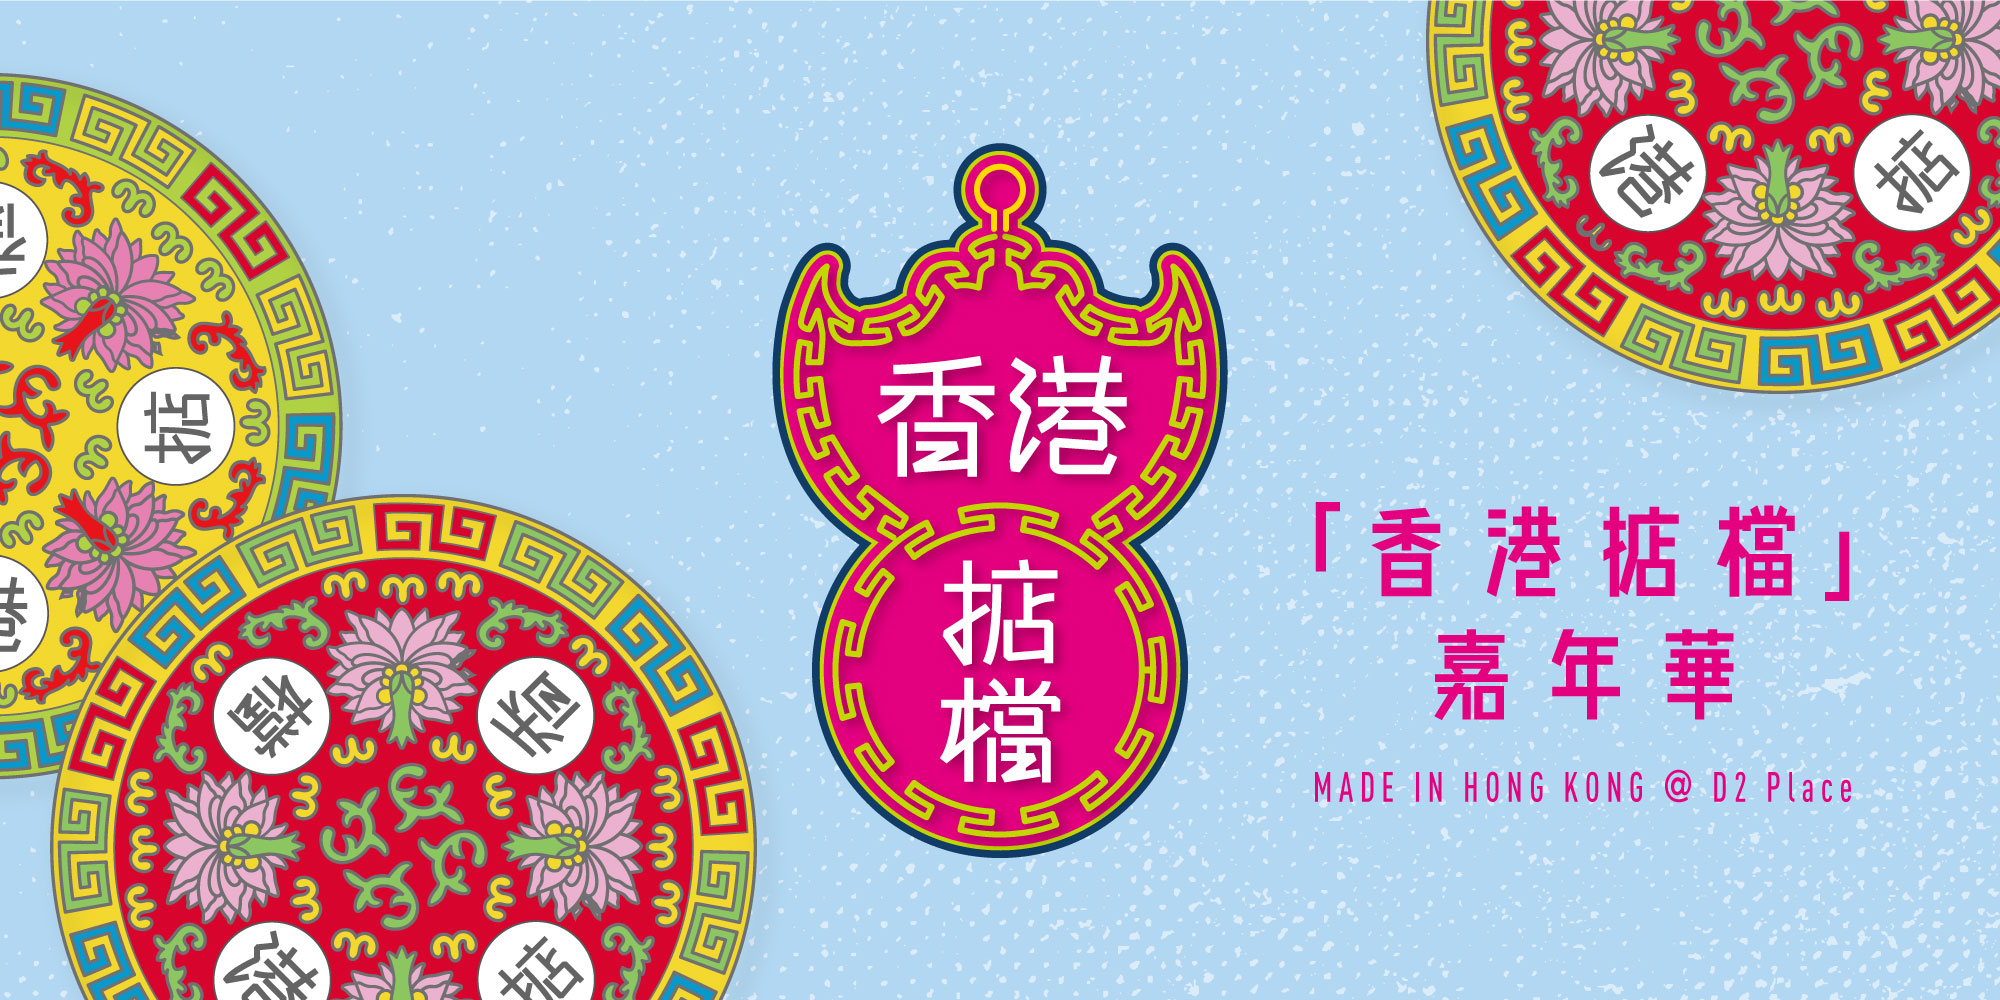 Supporting Event - Made in Hong Kong' Street Carnival &  Top 10 Artisans 2019